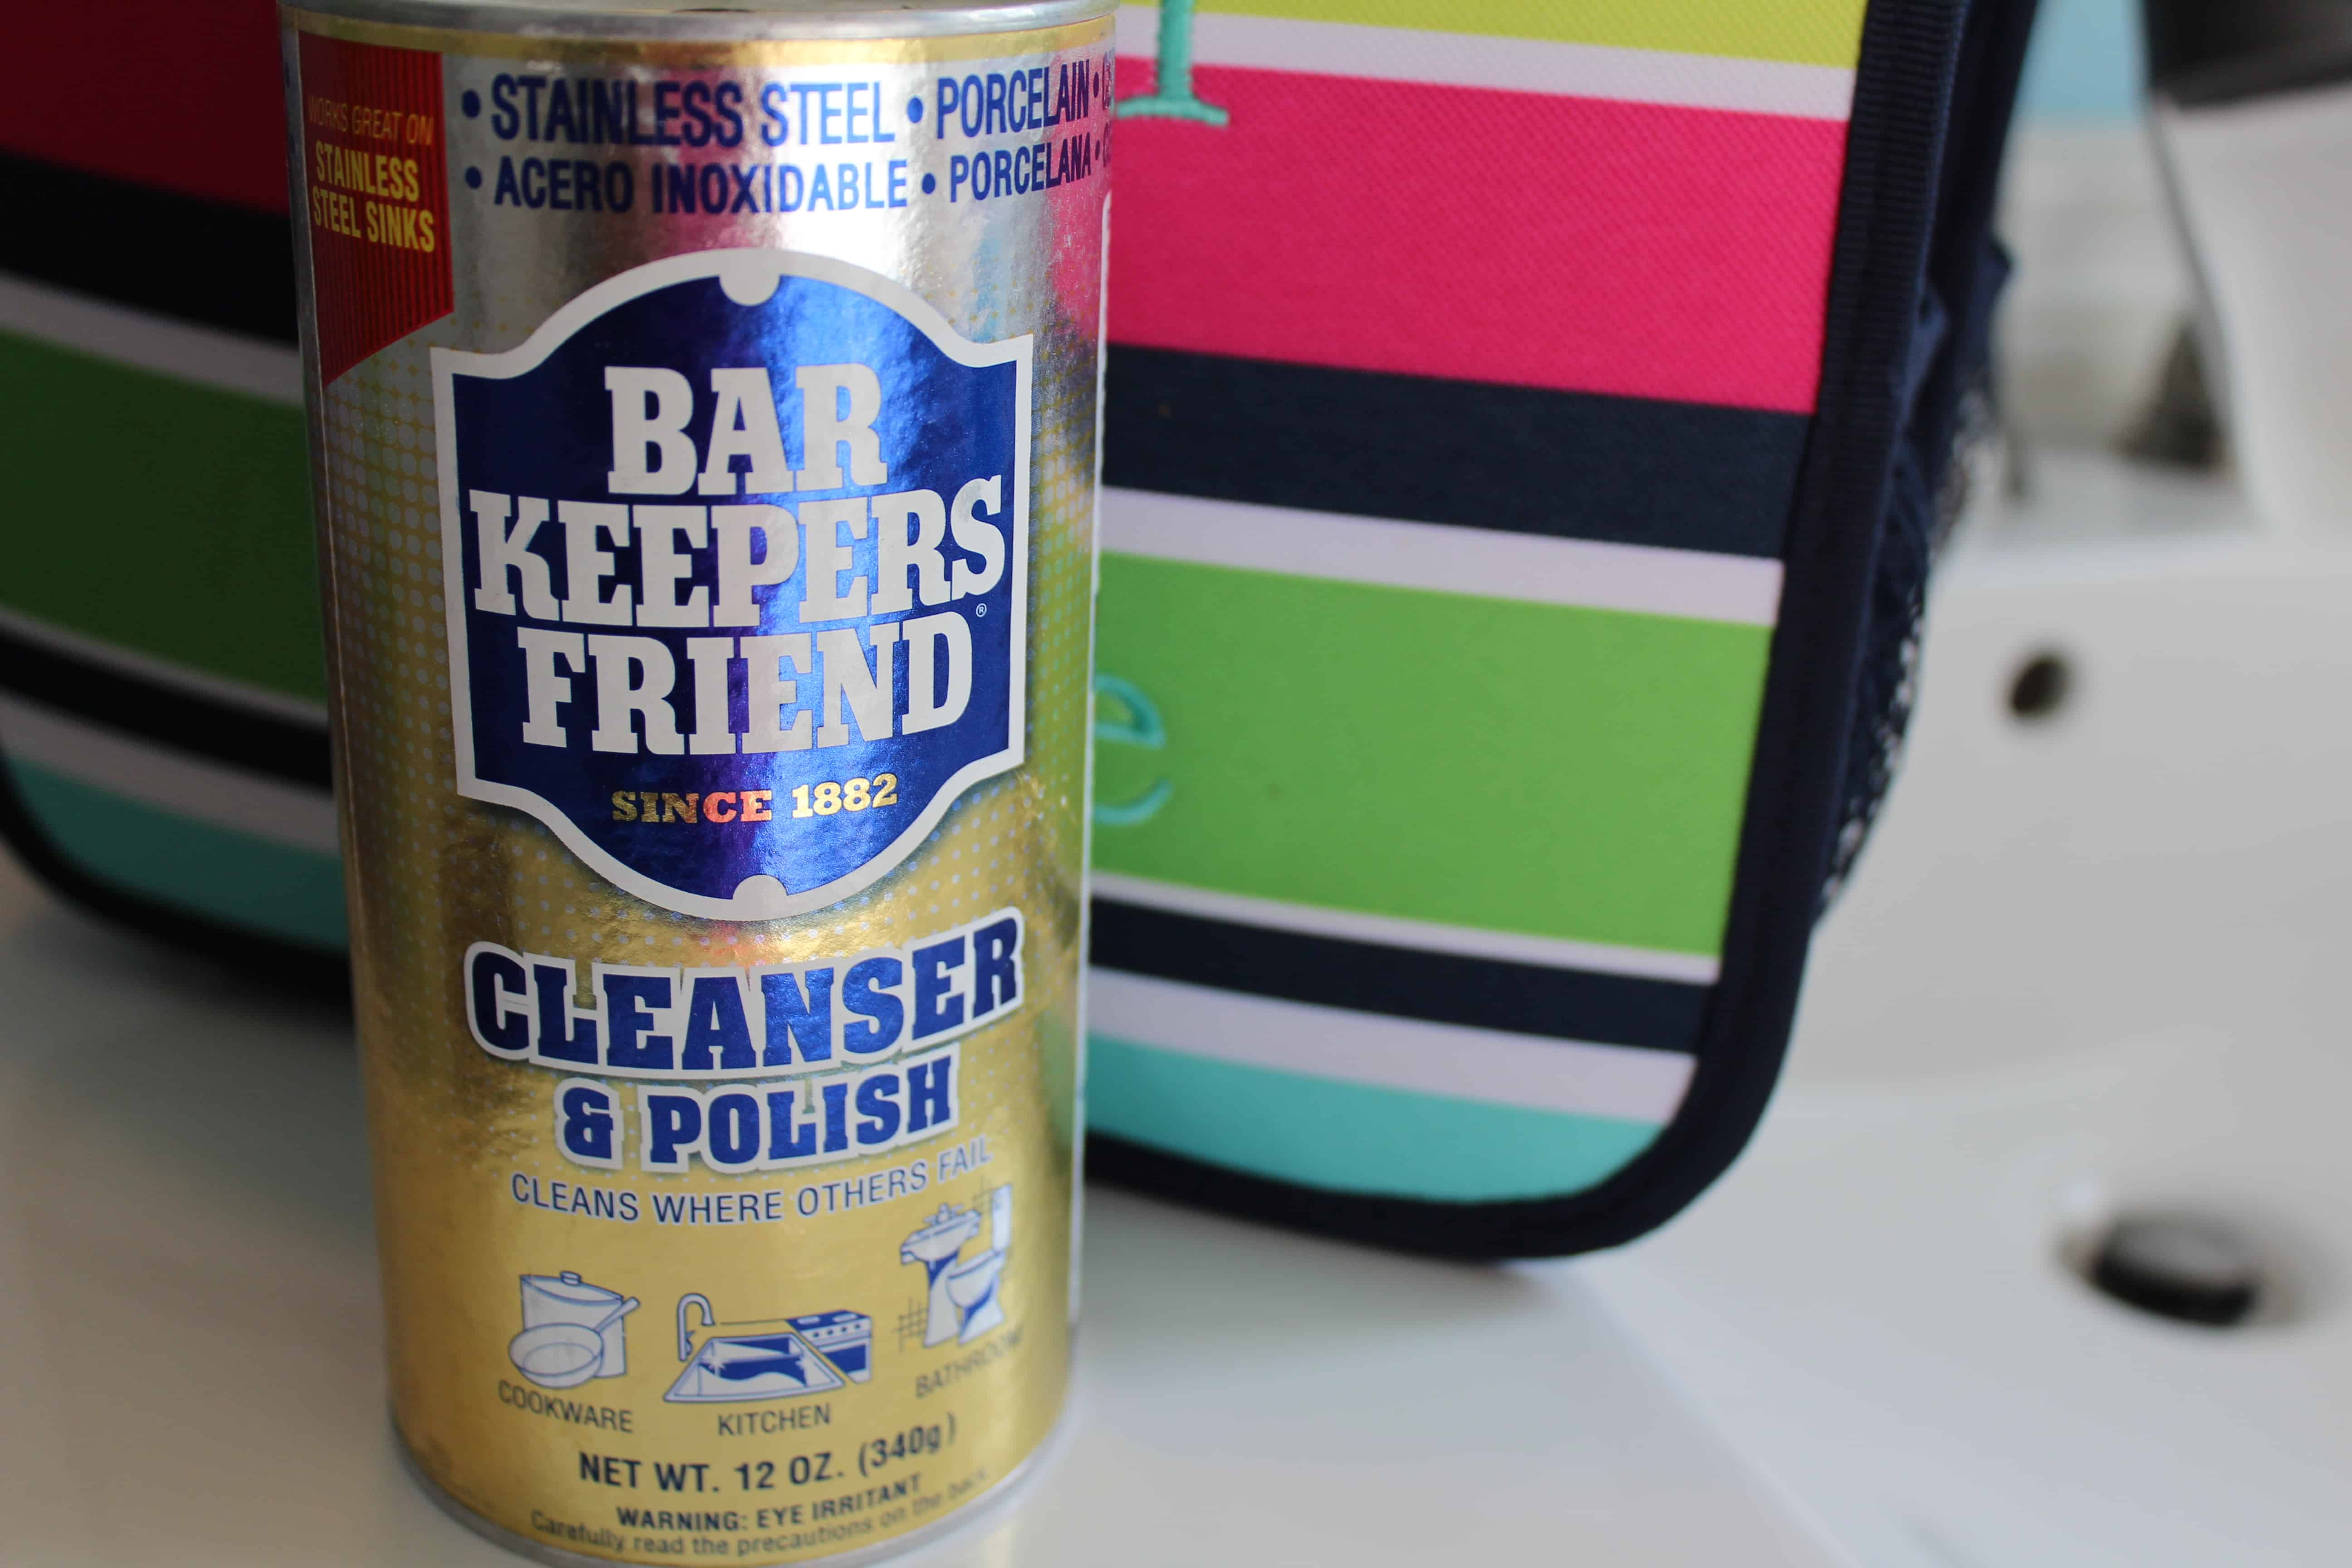 A can of barkeepers friend next to a caddy bag.